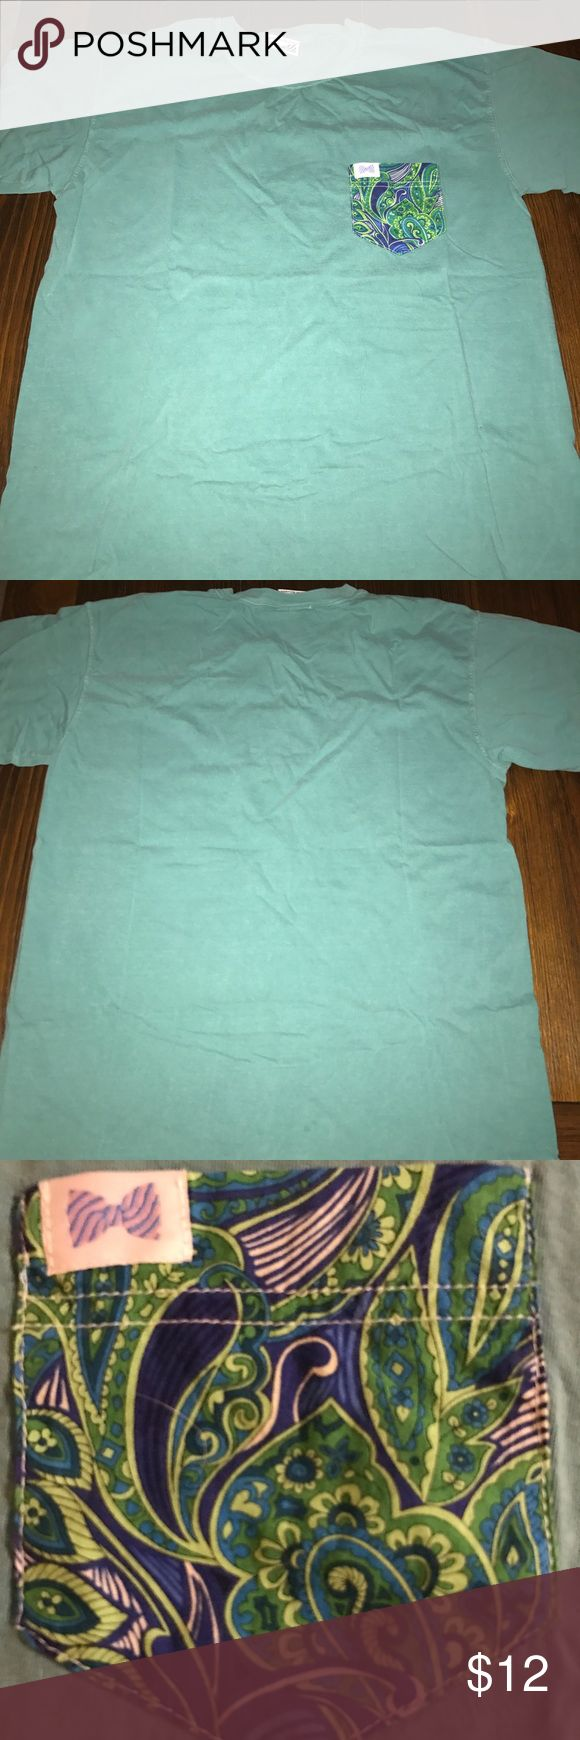 Fraternity Collection Pocket Tshirt Adult L Tops Tees - Short Sleeve